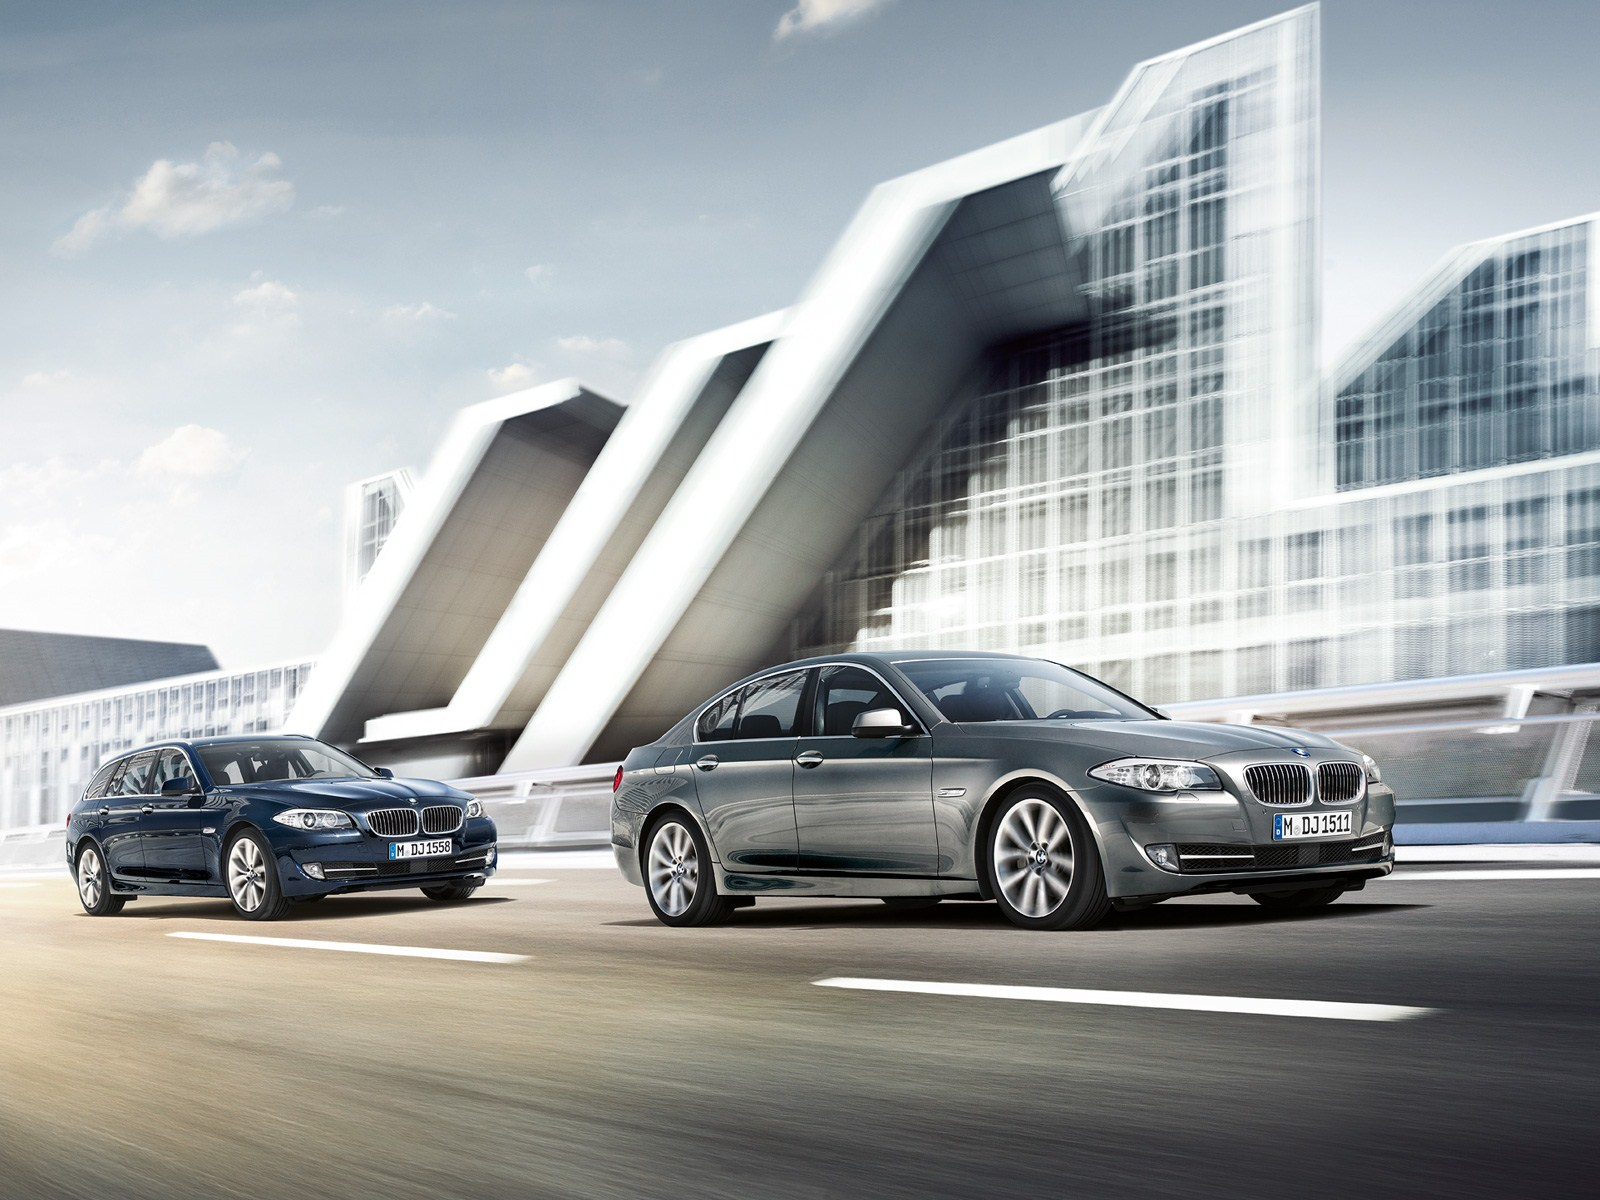 Wallpapers: F11 5 Series Touring next to the F10 5er Sedan